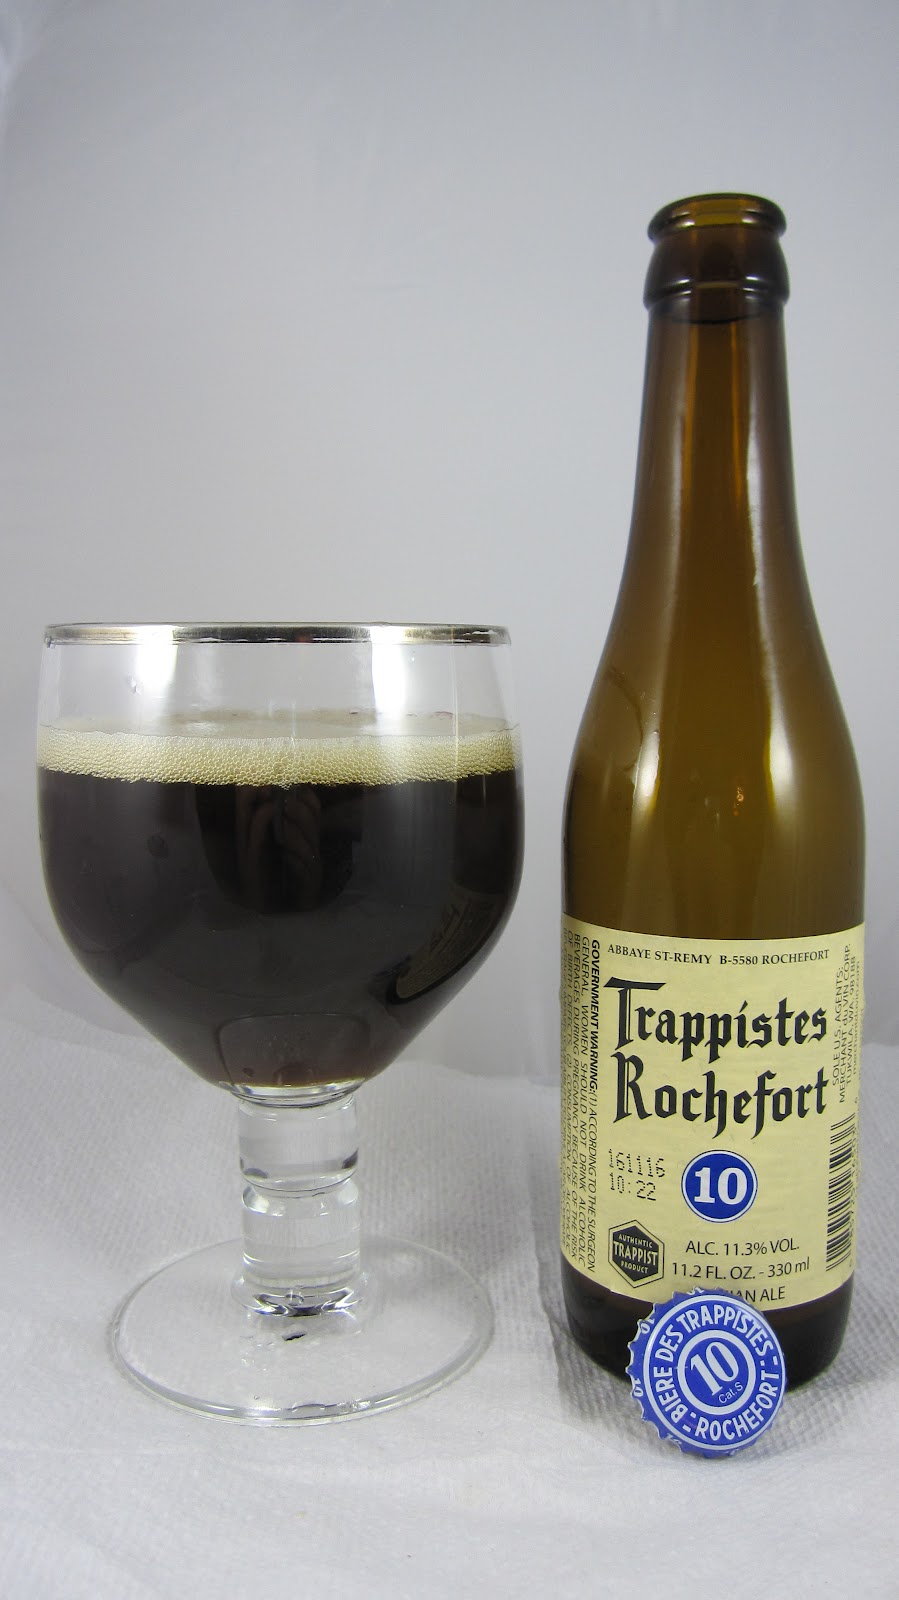 Chad'z Beer Reviews: Trappistes Rochefort 10